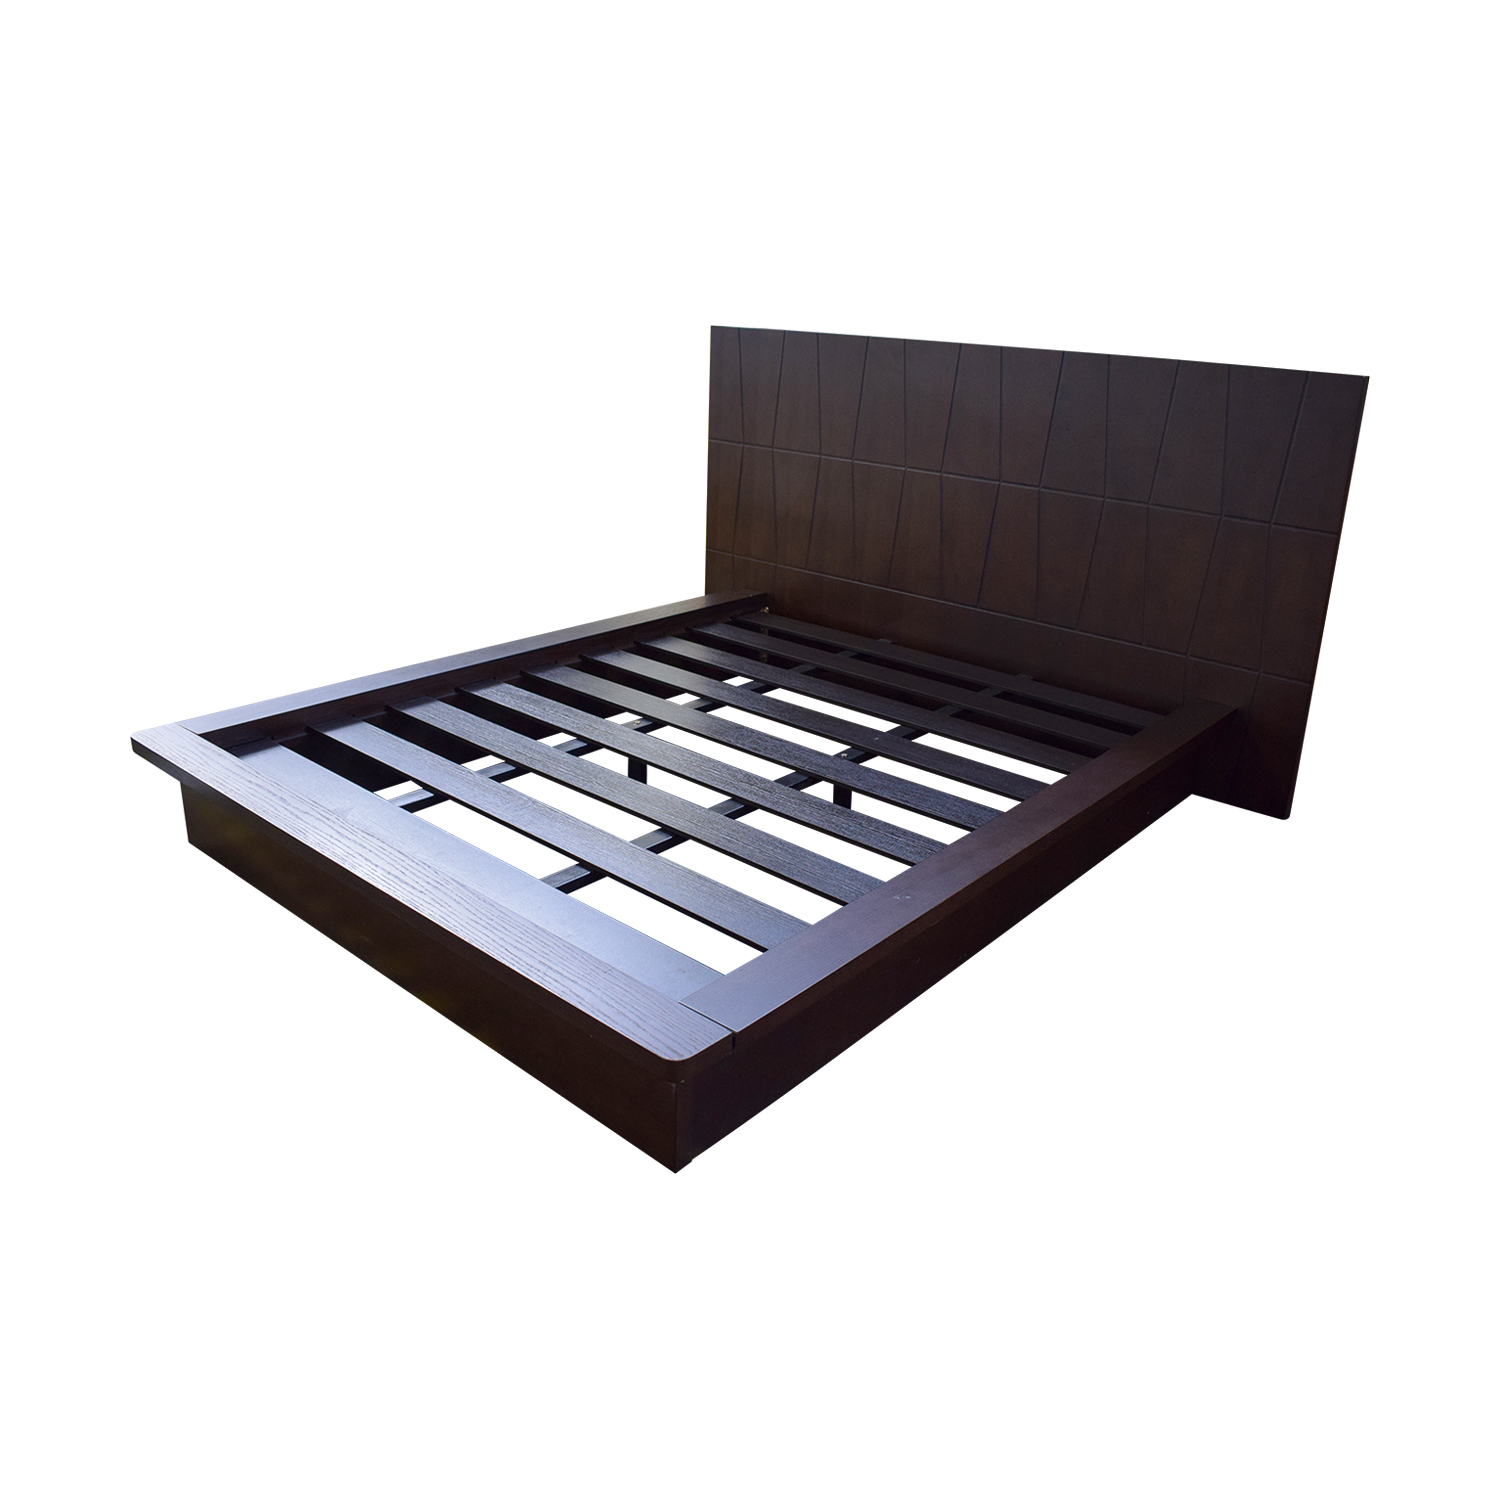 Delicieux ... Downtown Furniture Downtown Furniture Modern Platform Queen Bed Used ...